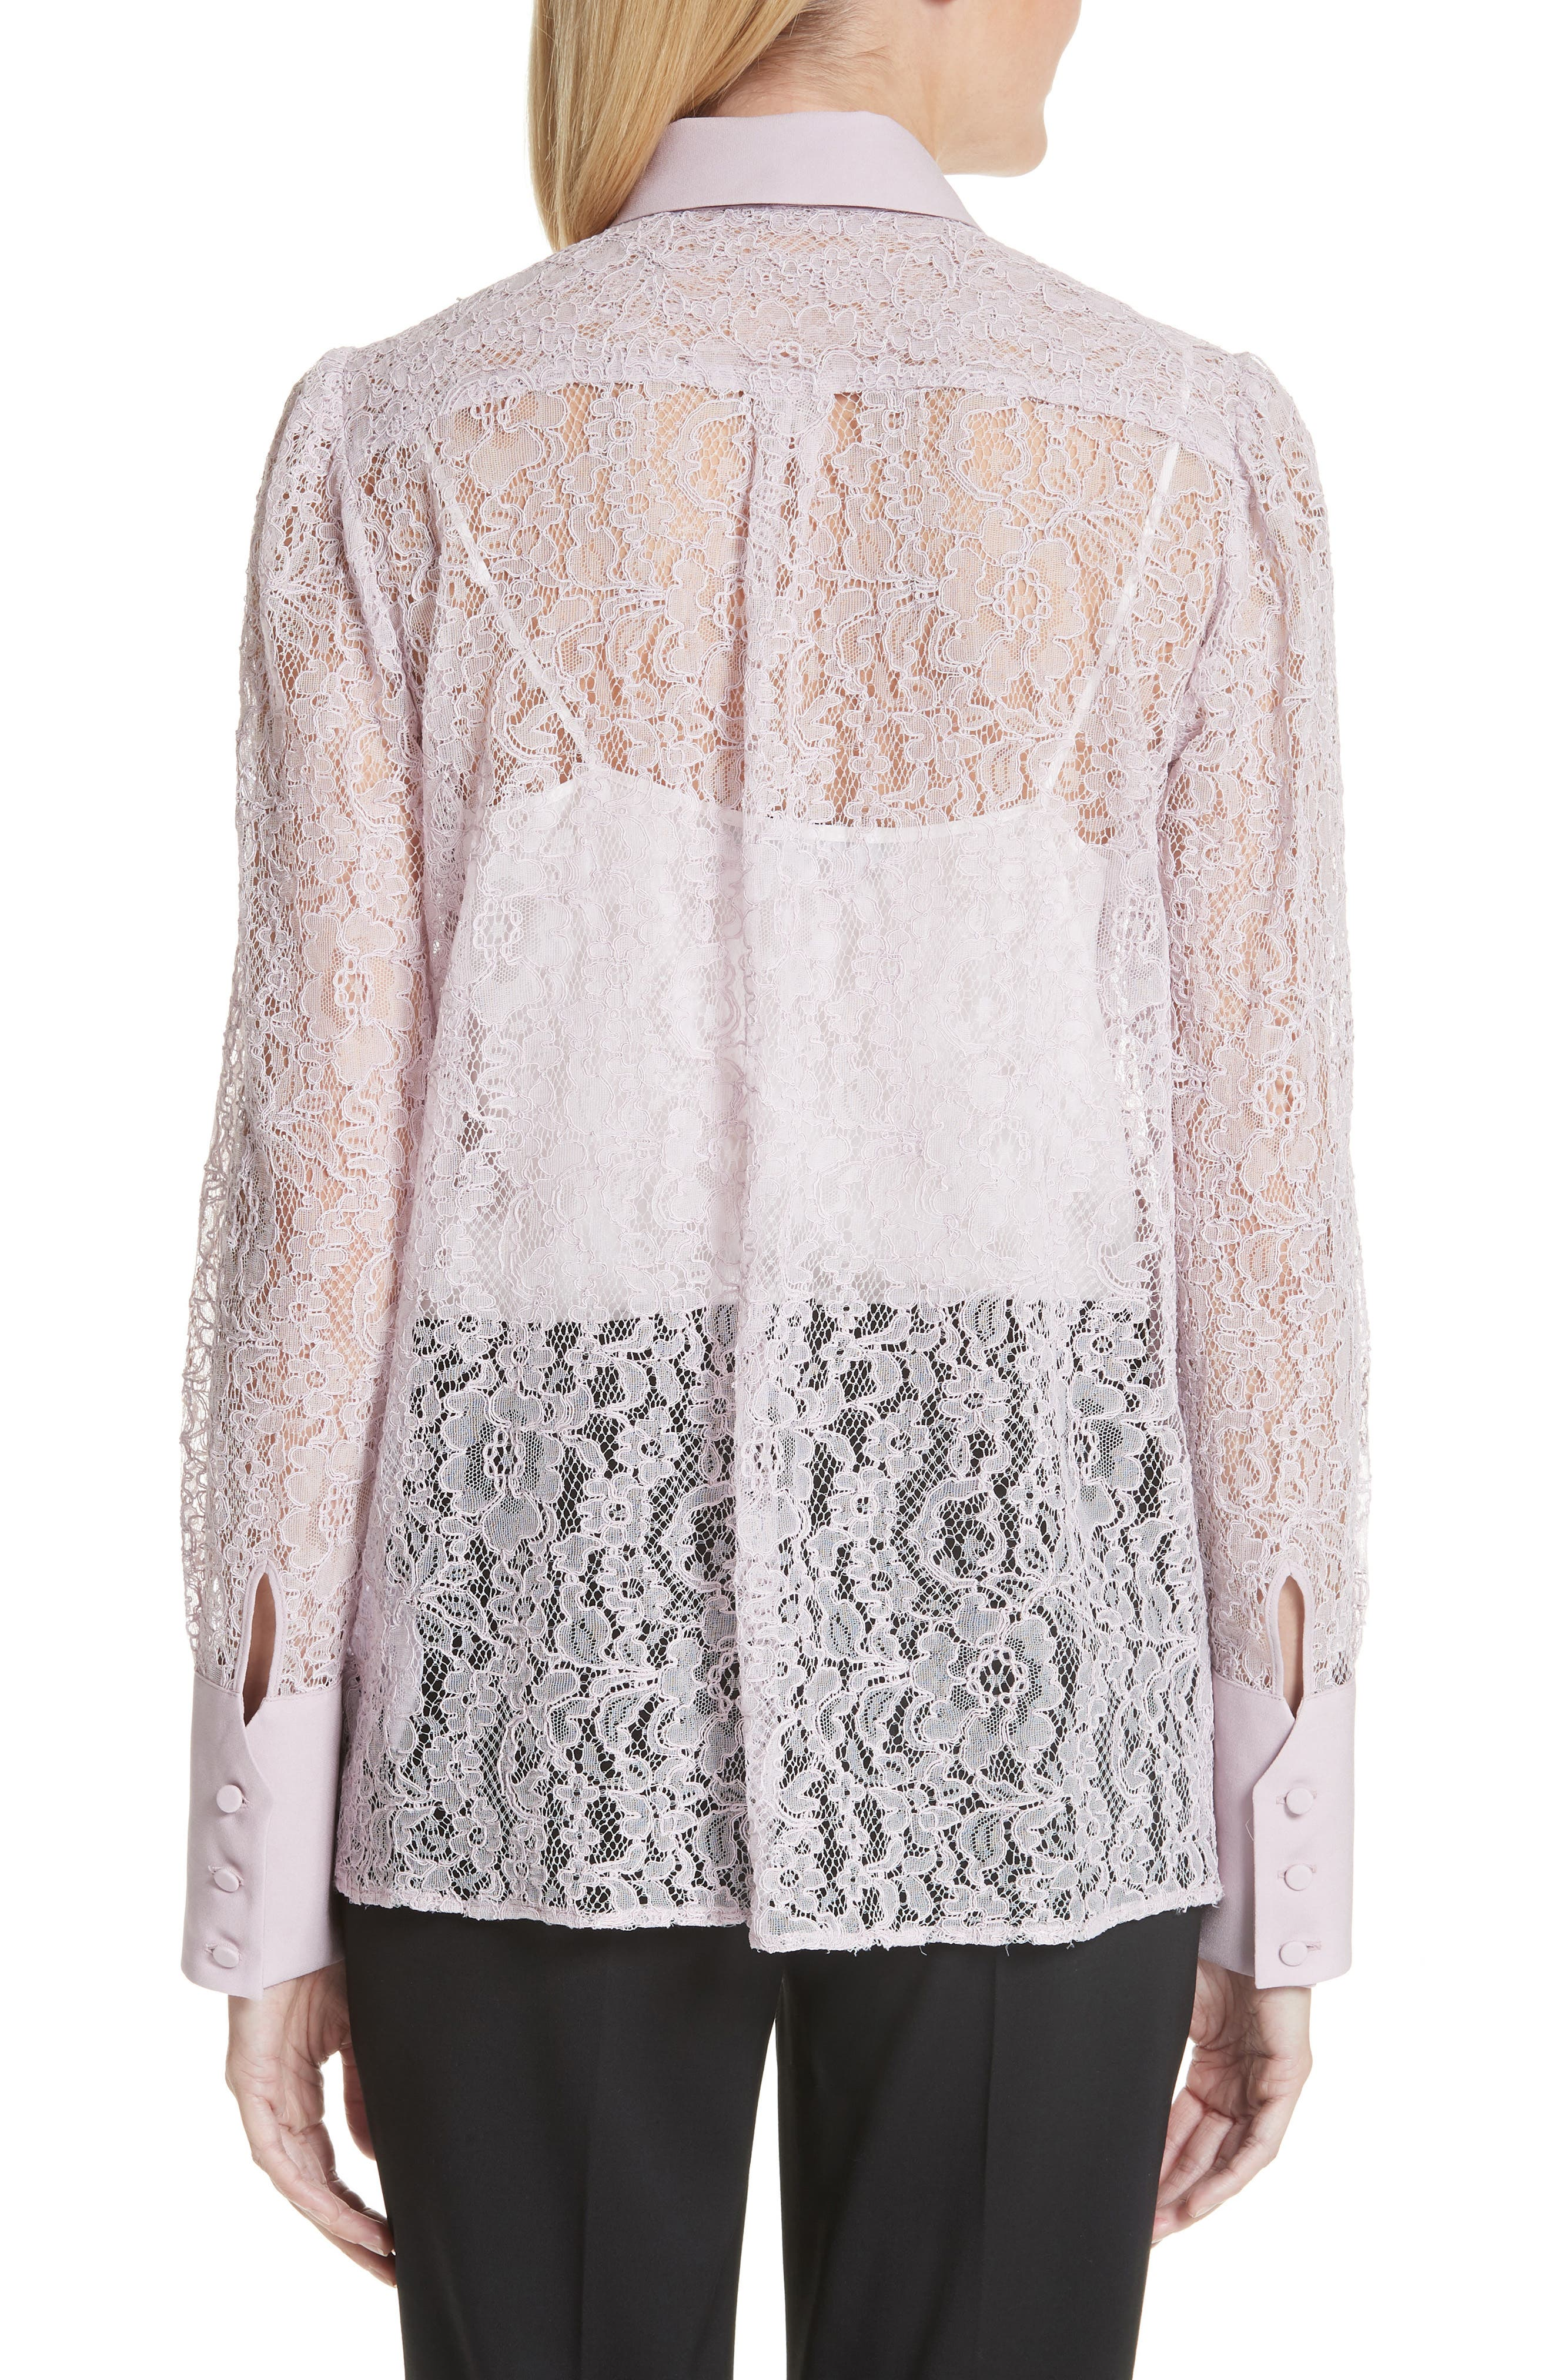 VALENTINO,                             Tie Neck Chantilly Lace Shirt,                             Alternate thumbnail 2, color,                             650